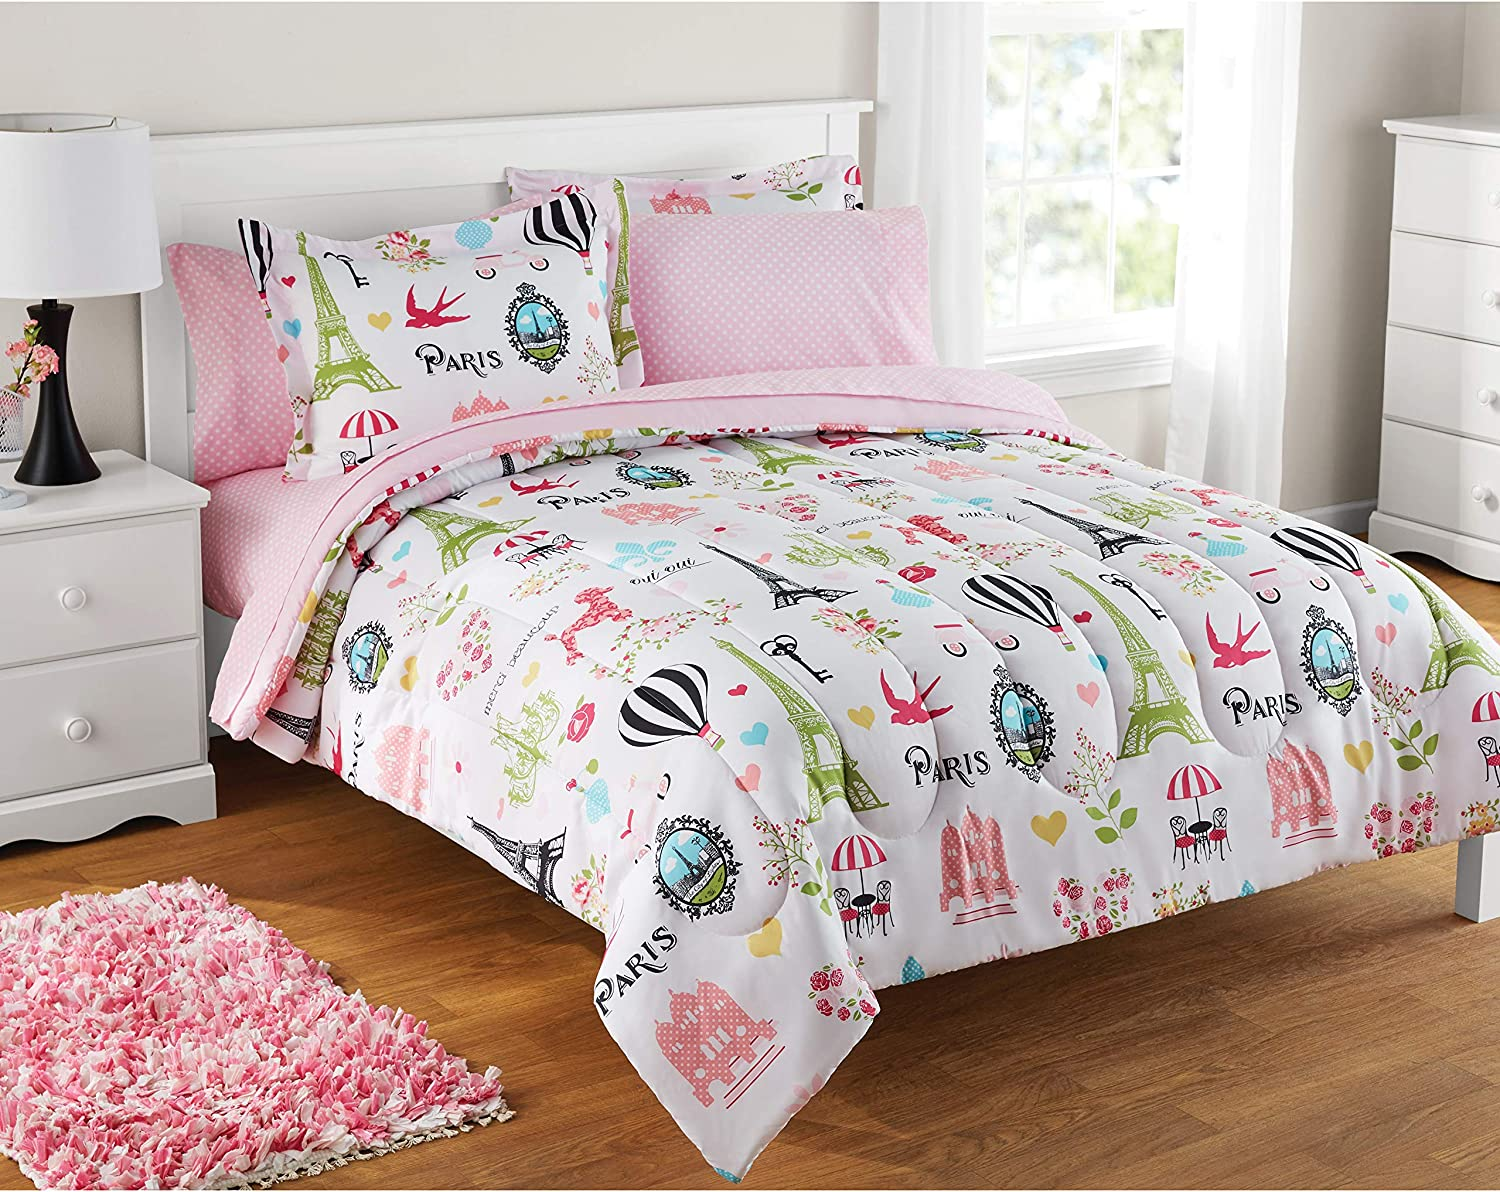 Mainstays Kids Red Plaid Bed in a Bag Complete Bedding Set 7 PC FULL NEW